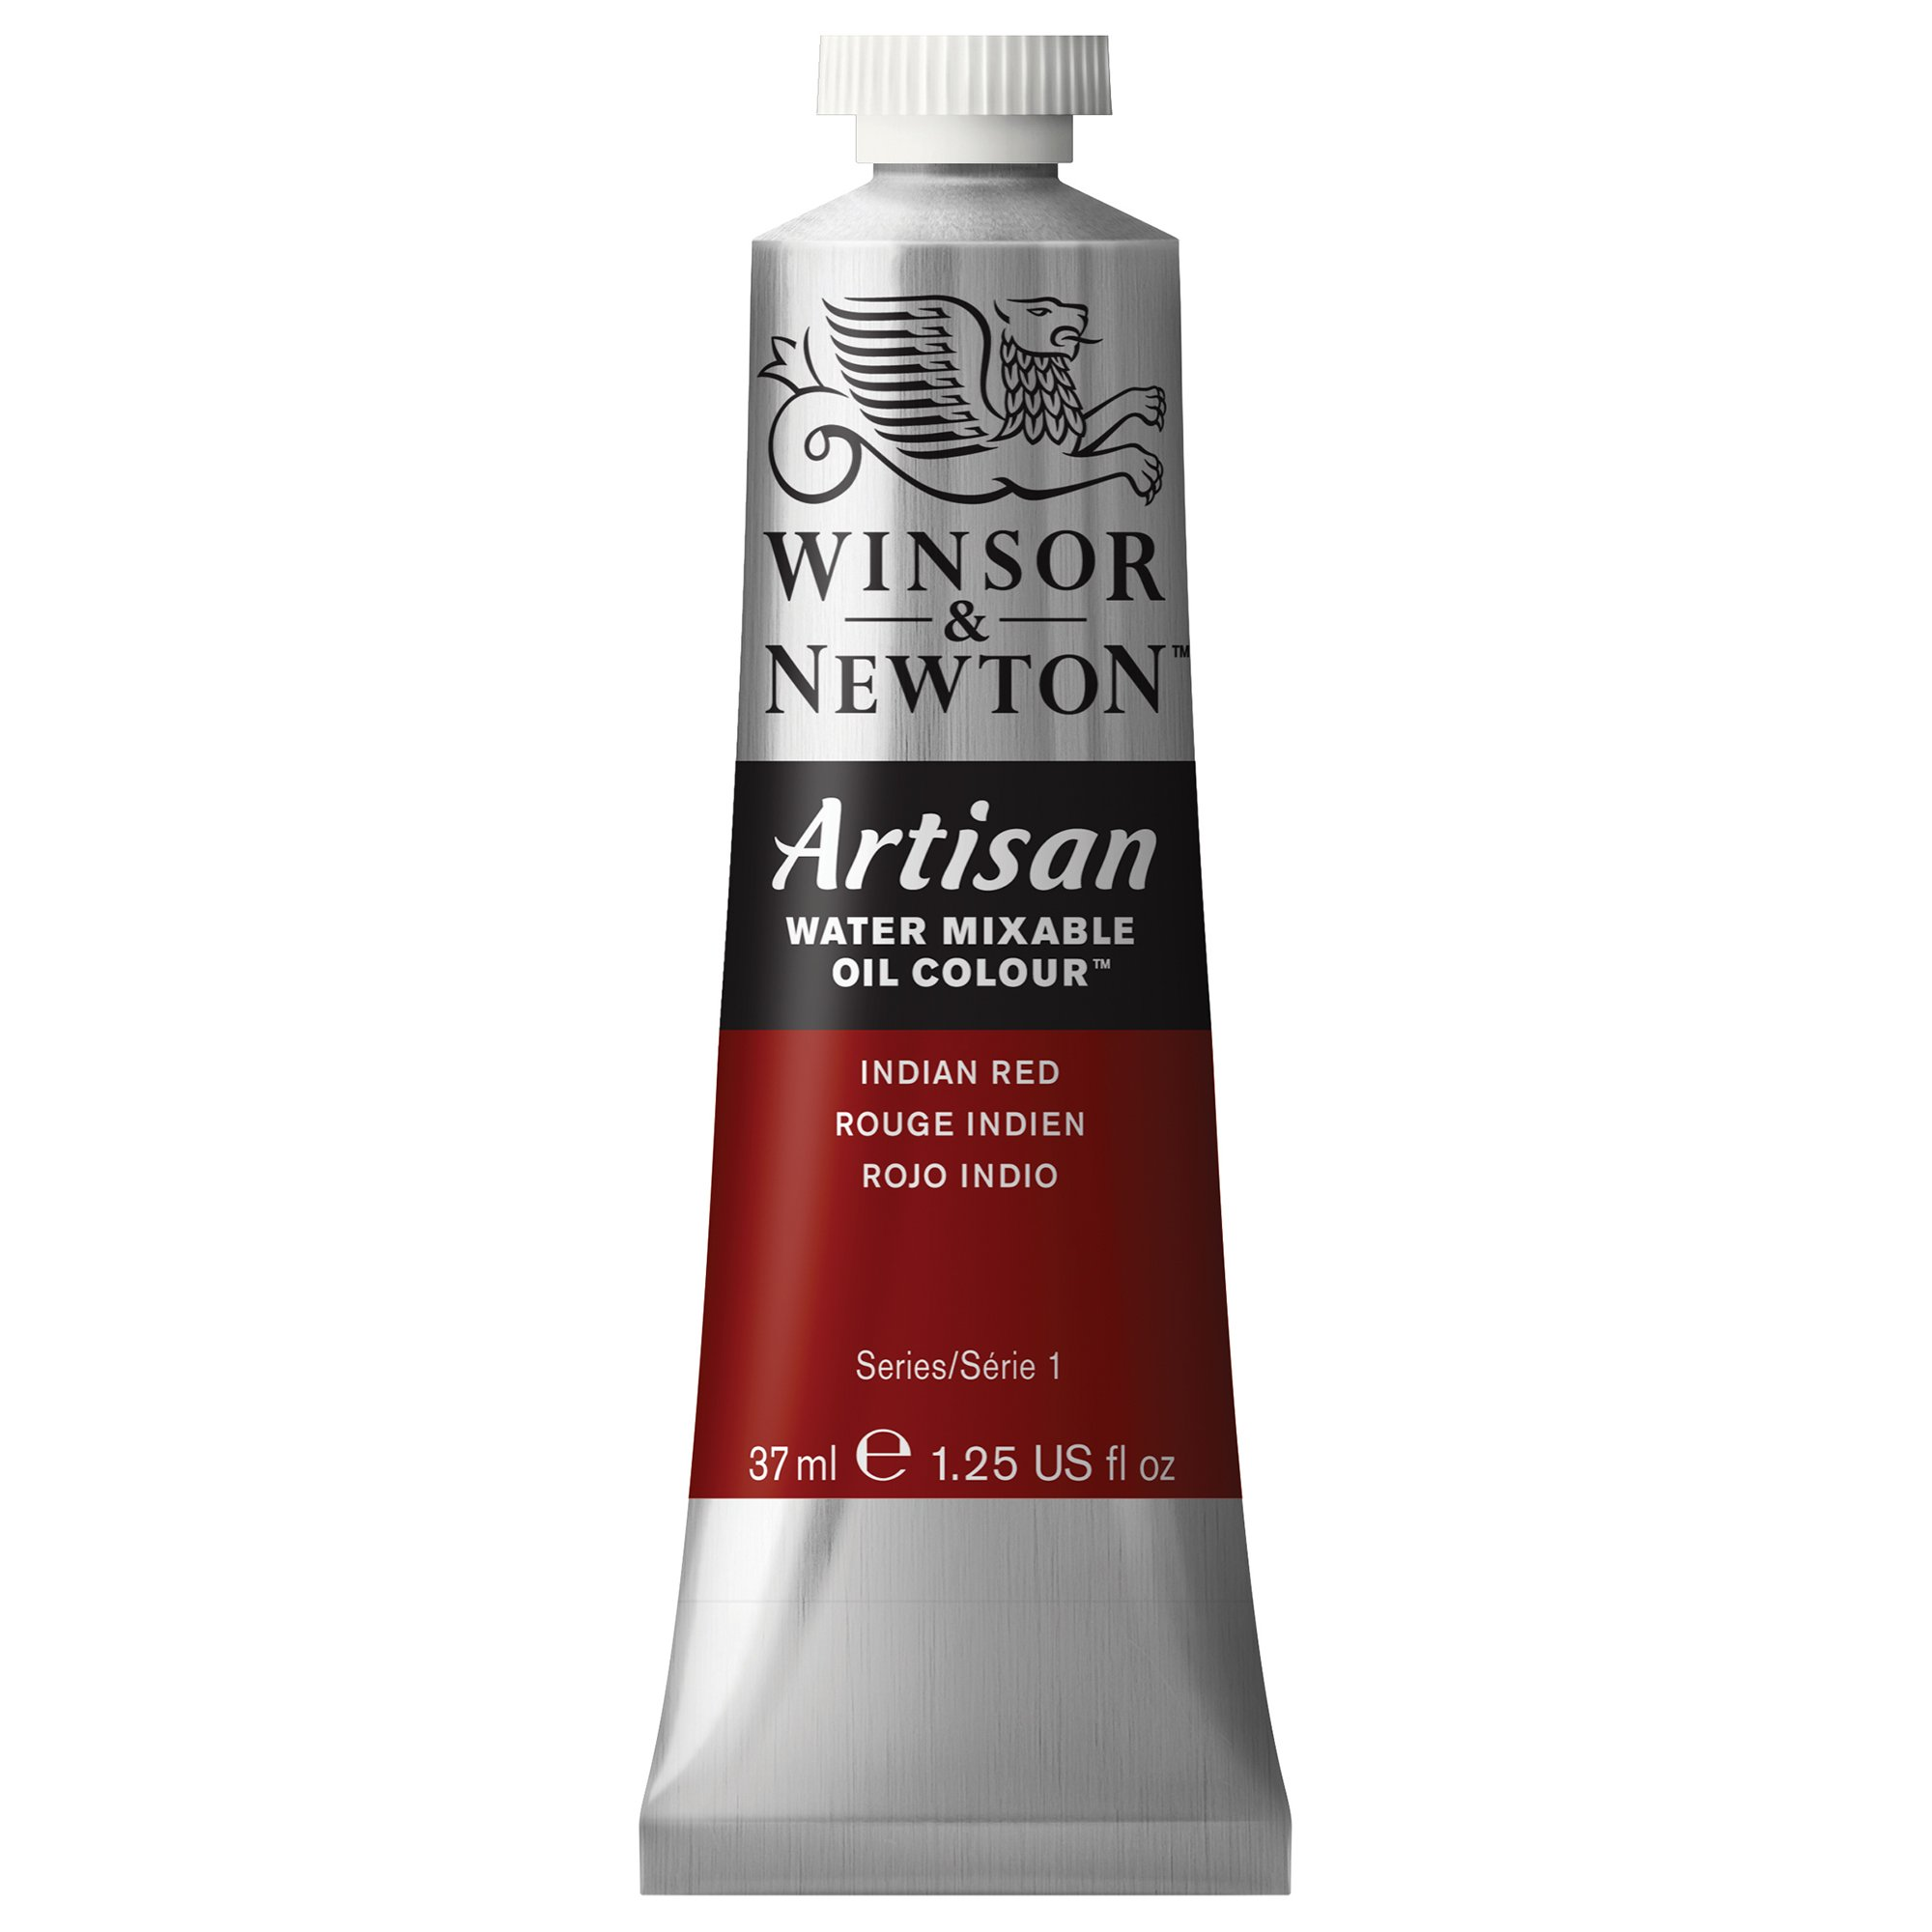 Winsor & Newton Artisan Water Mixable Oil Colour, 37ml Tube, Indian Red